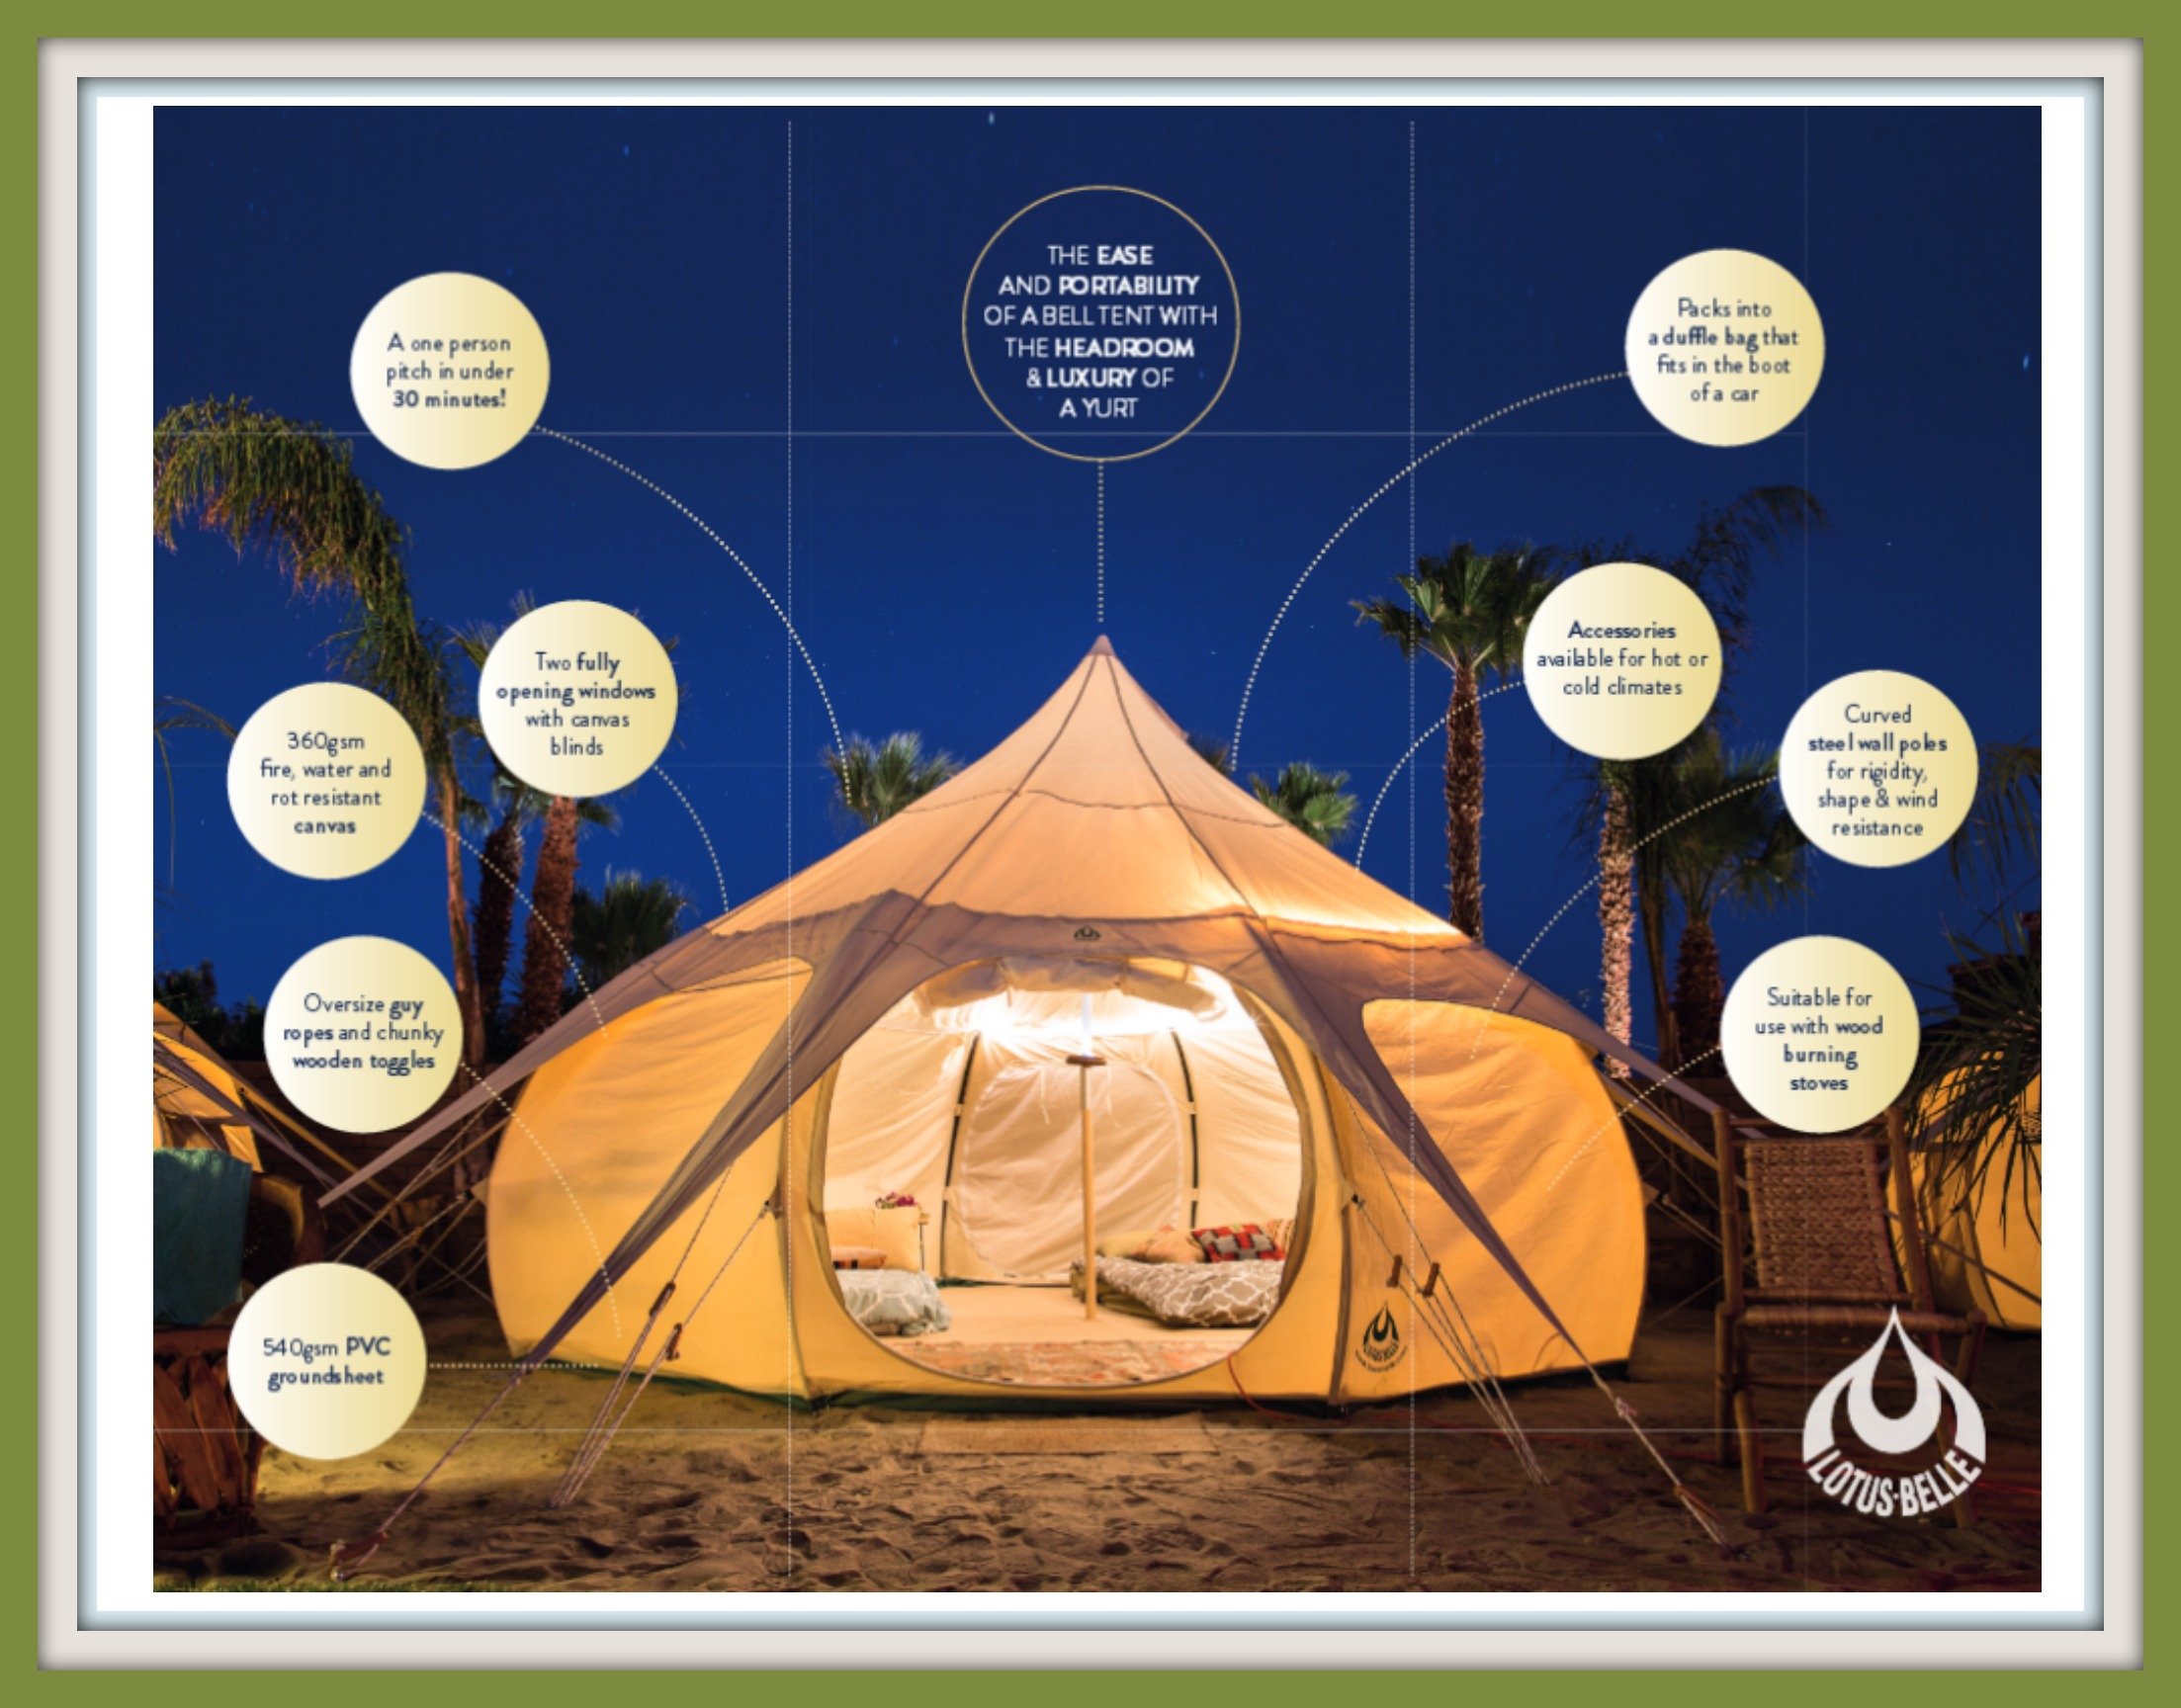 lotus-belle-tent-brochure-2